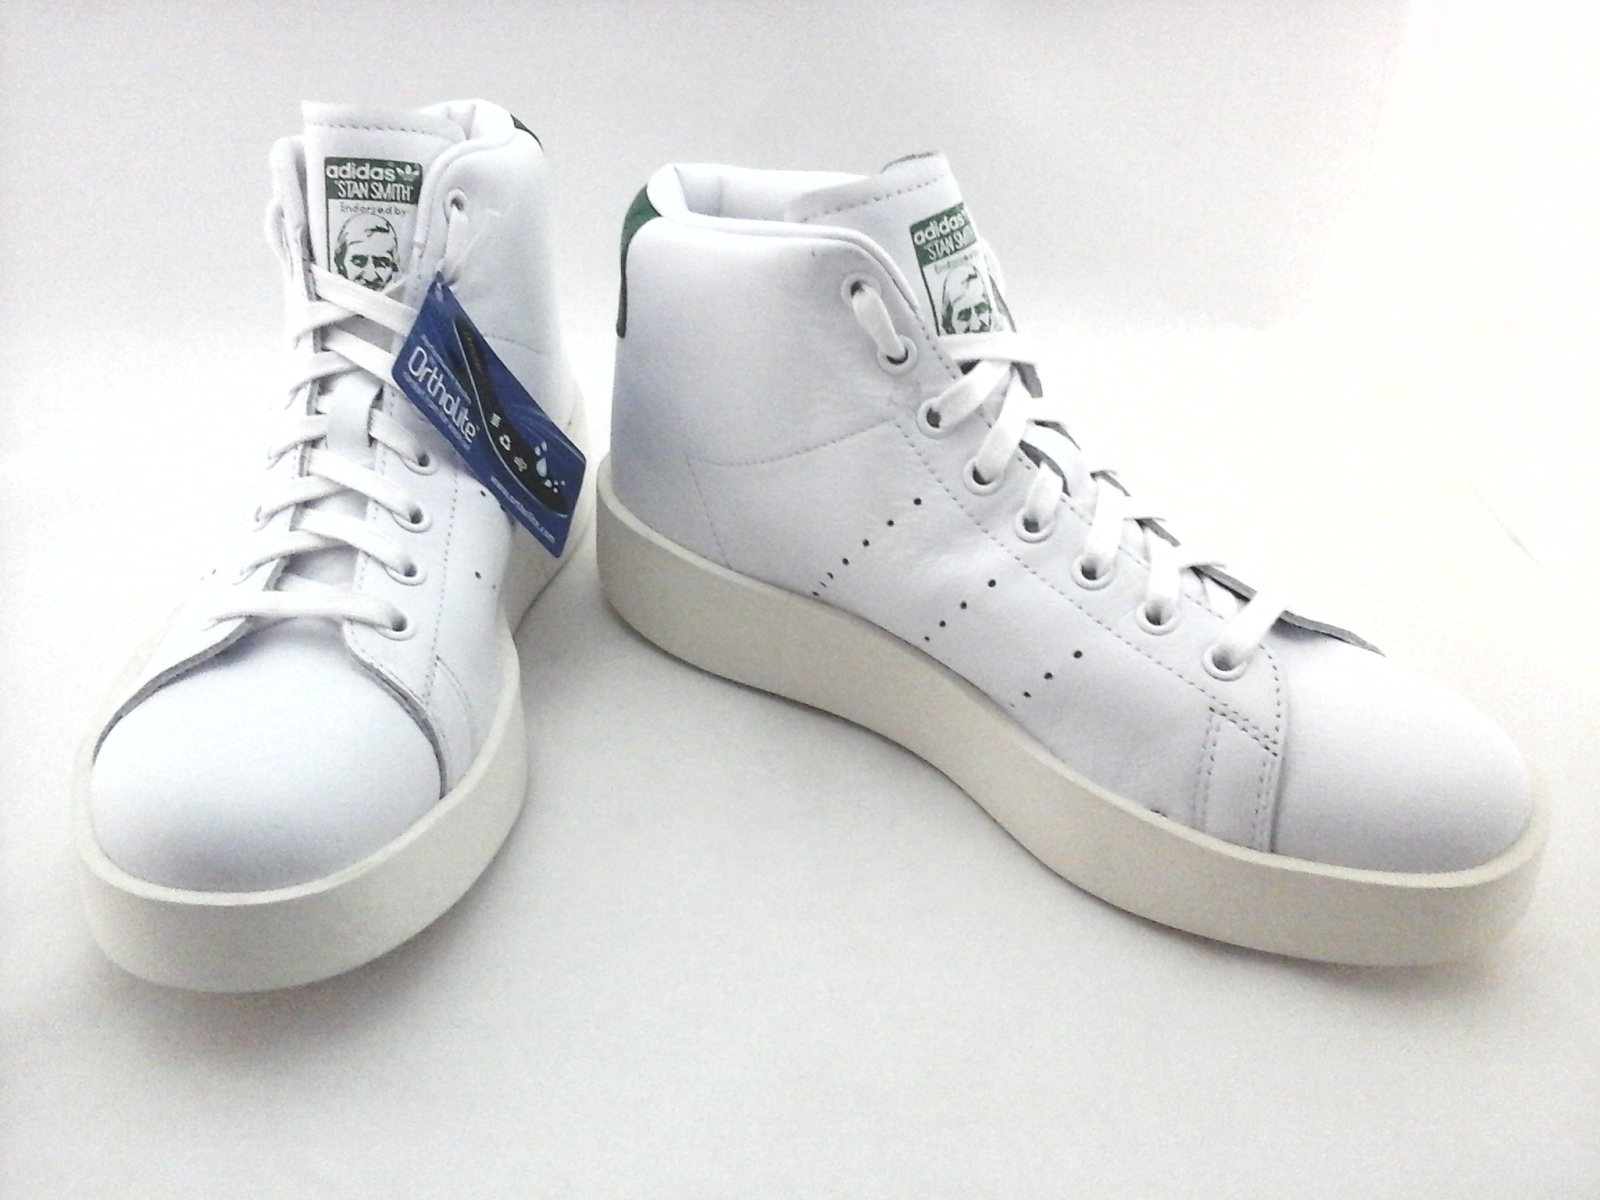 241186afb15 ADIDAS Stan Smith Platform Bold Mid Shoes White Green Leather BY9663  Women s New